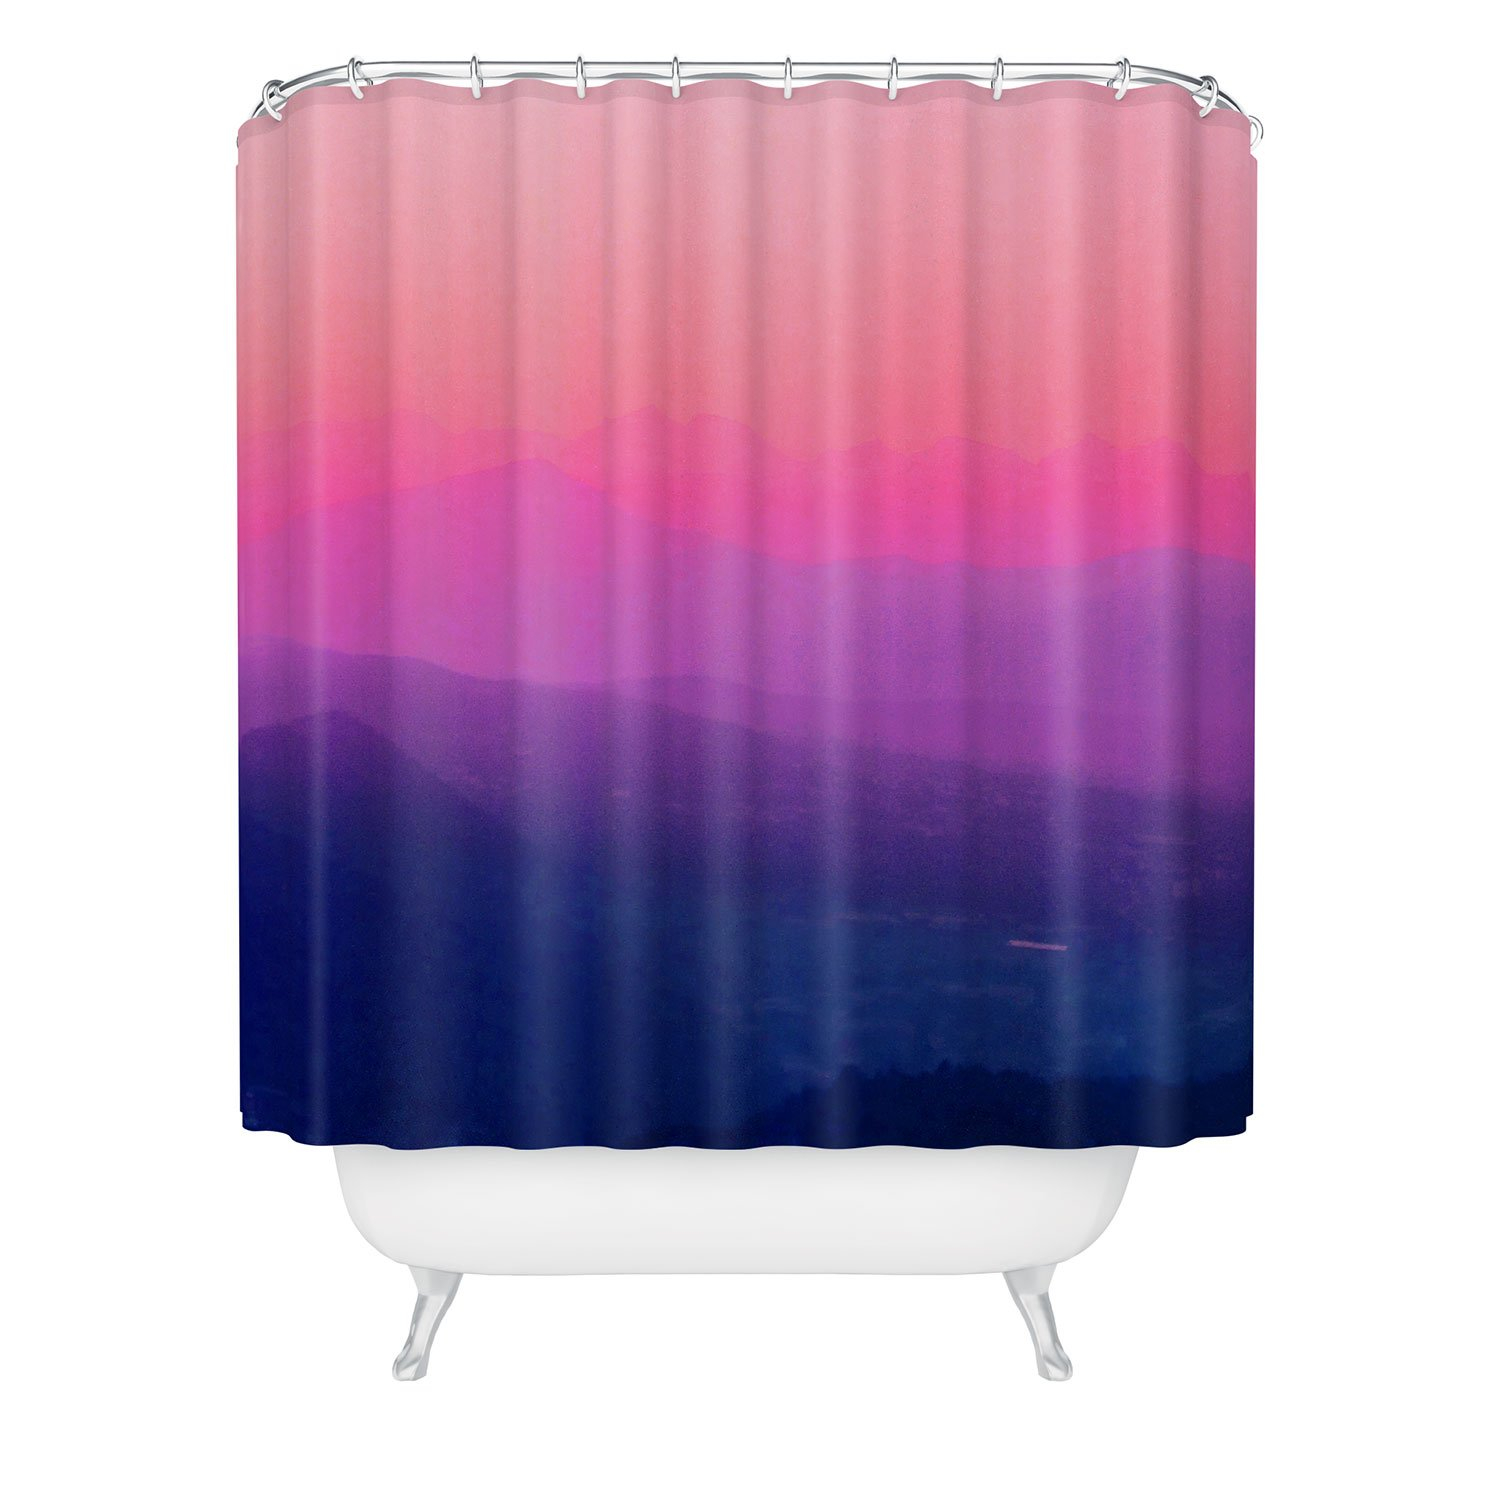 Image of Aimee St Hill Como Sunset Shower Curtain